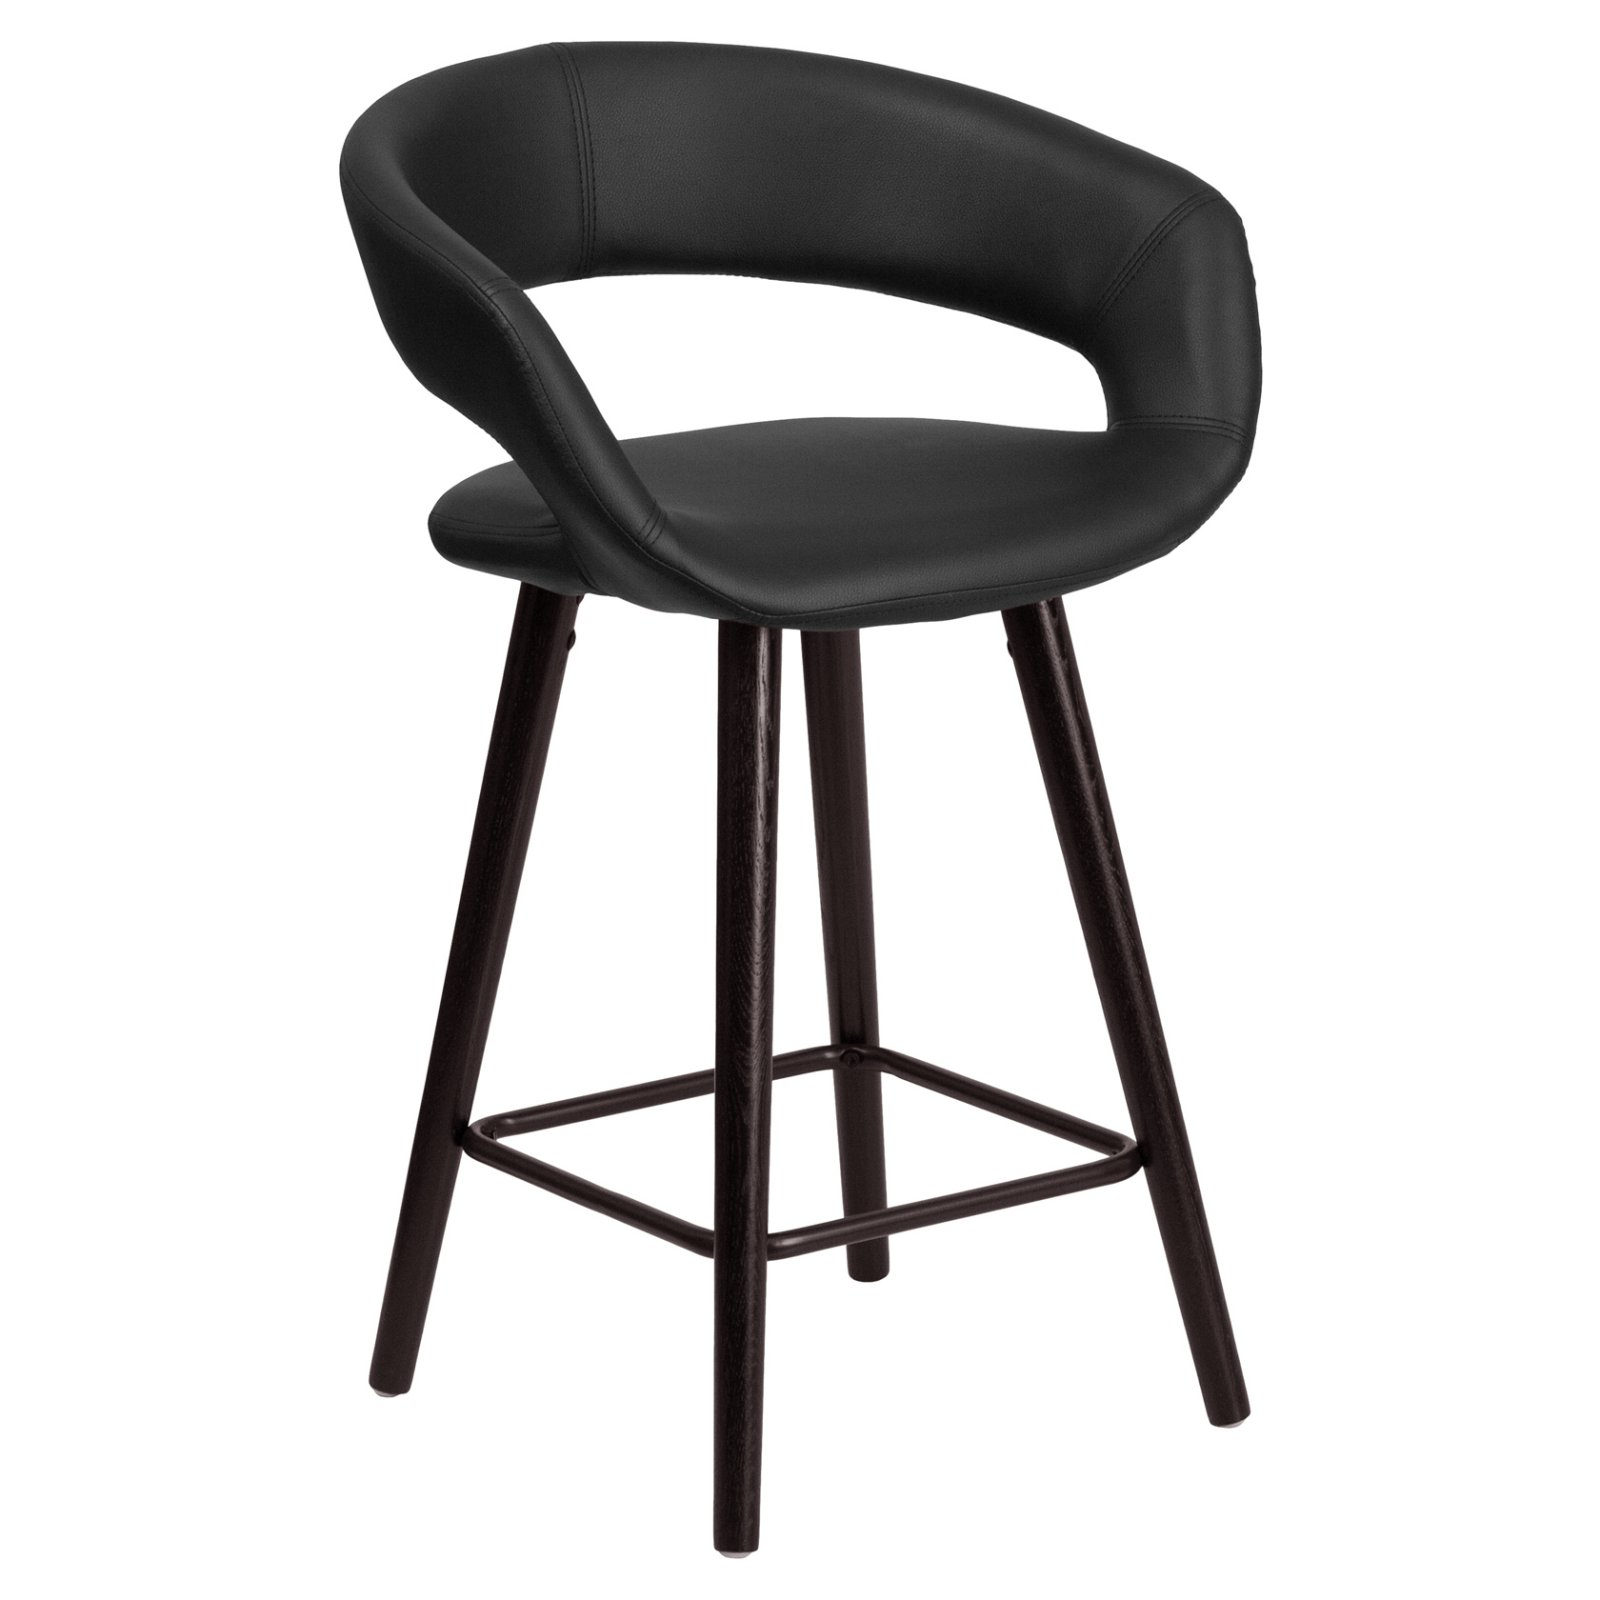 Flash Furniture Brynn 24 in. Contemporary Rounded Low Back Legged Vinyl Counter Stool